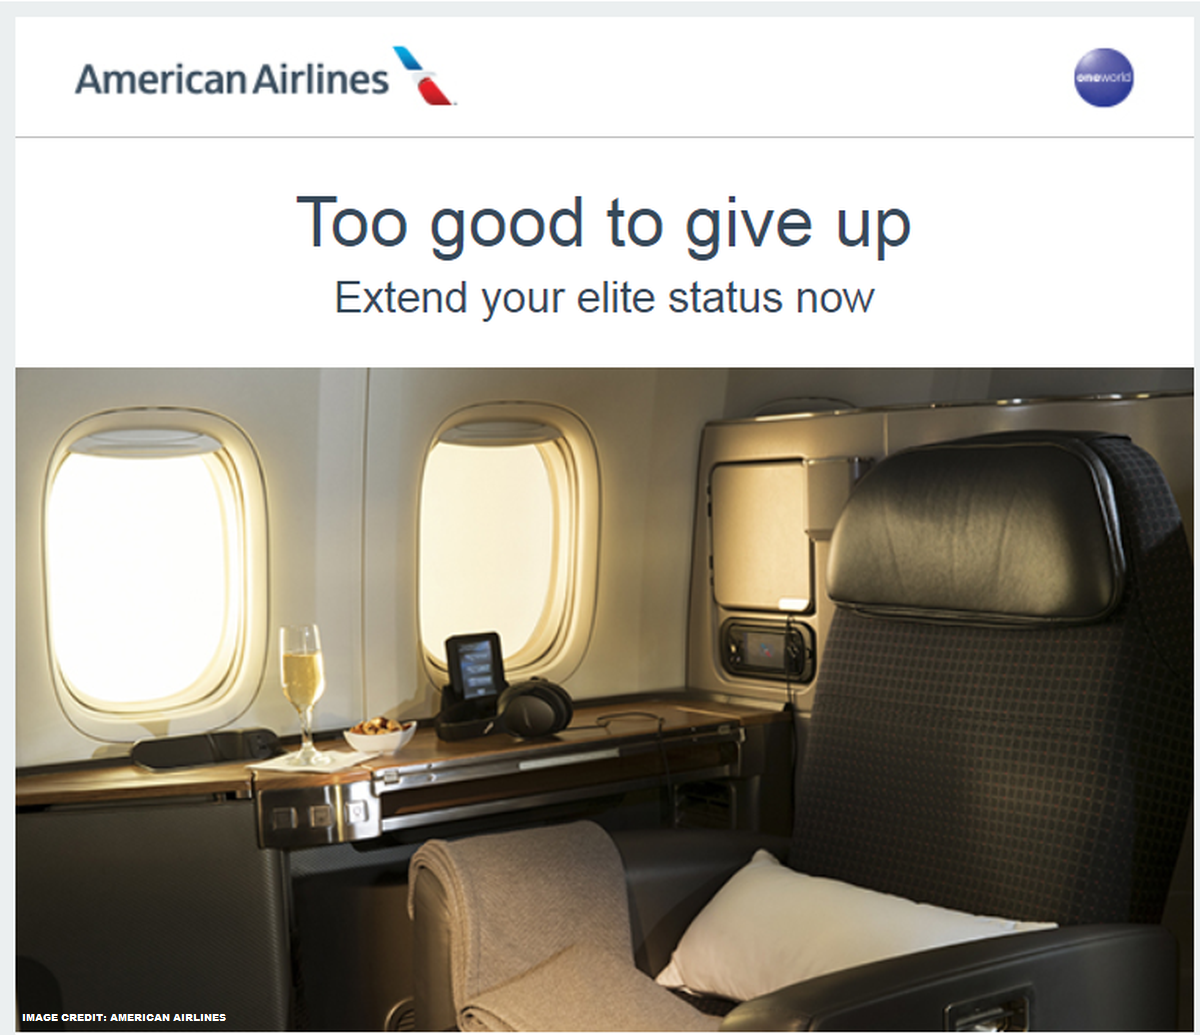 American Airline Advantage Furniture: American Airlines AAdvantage Extend & Boost Your Elite